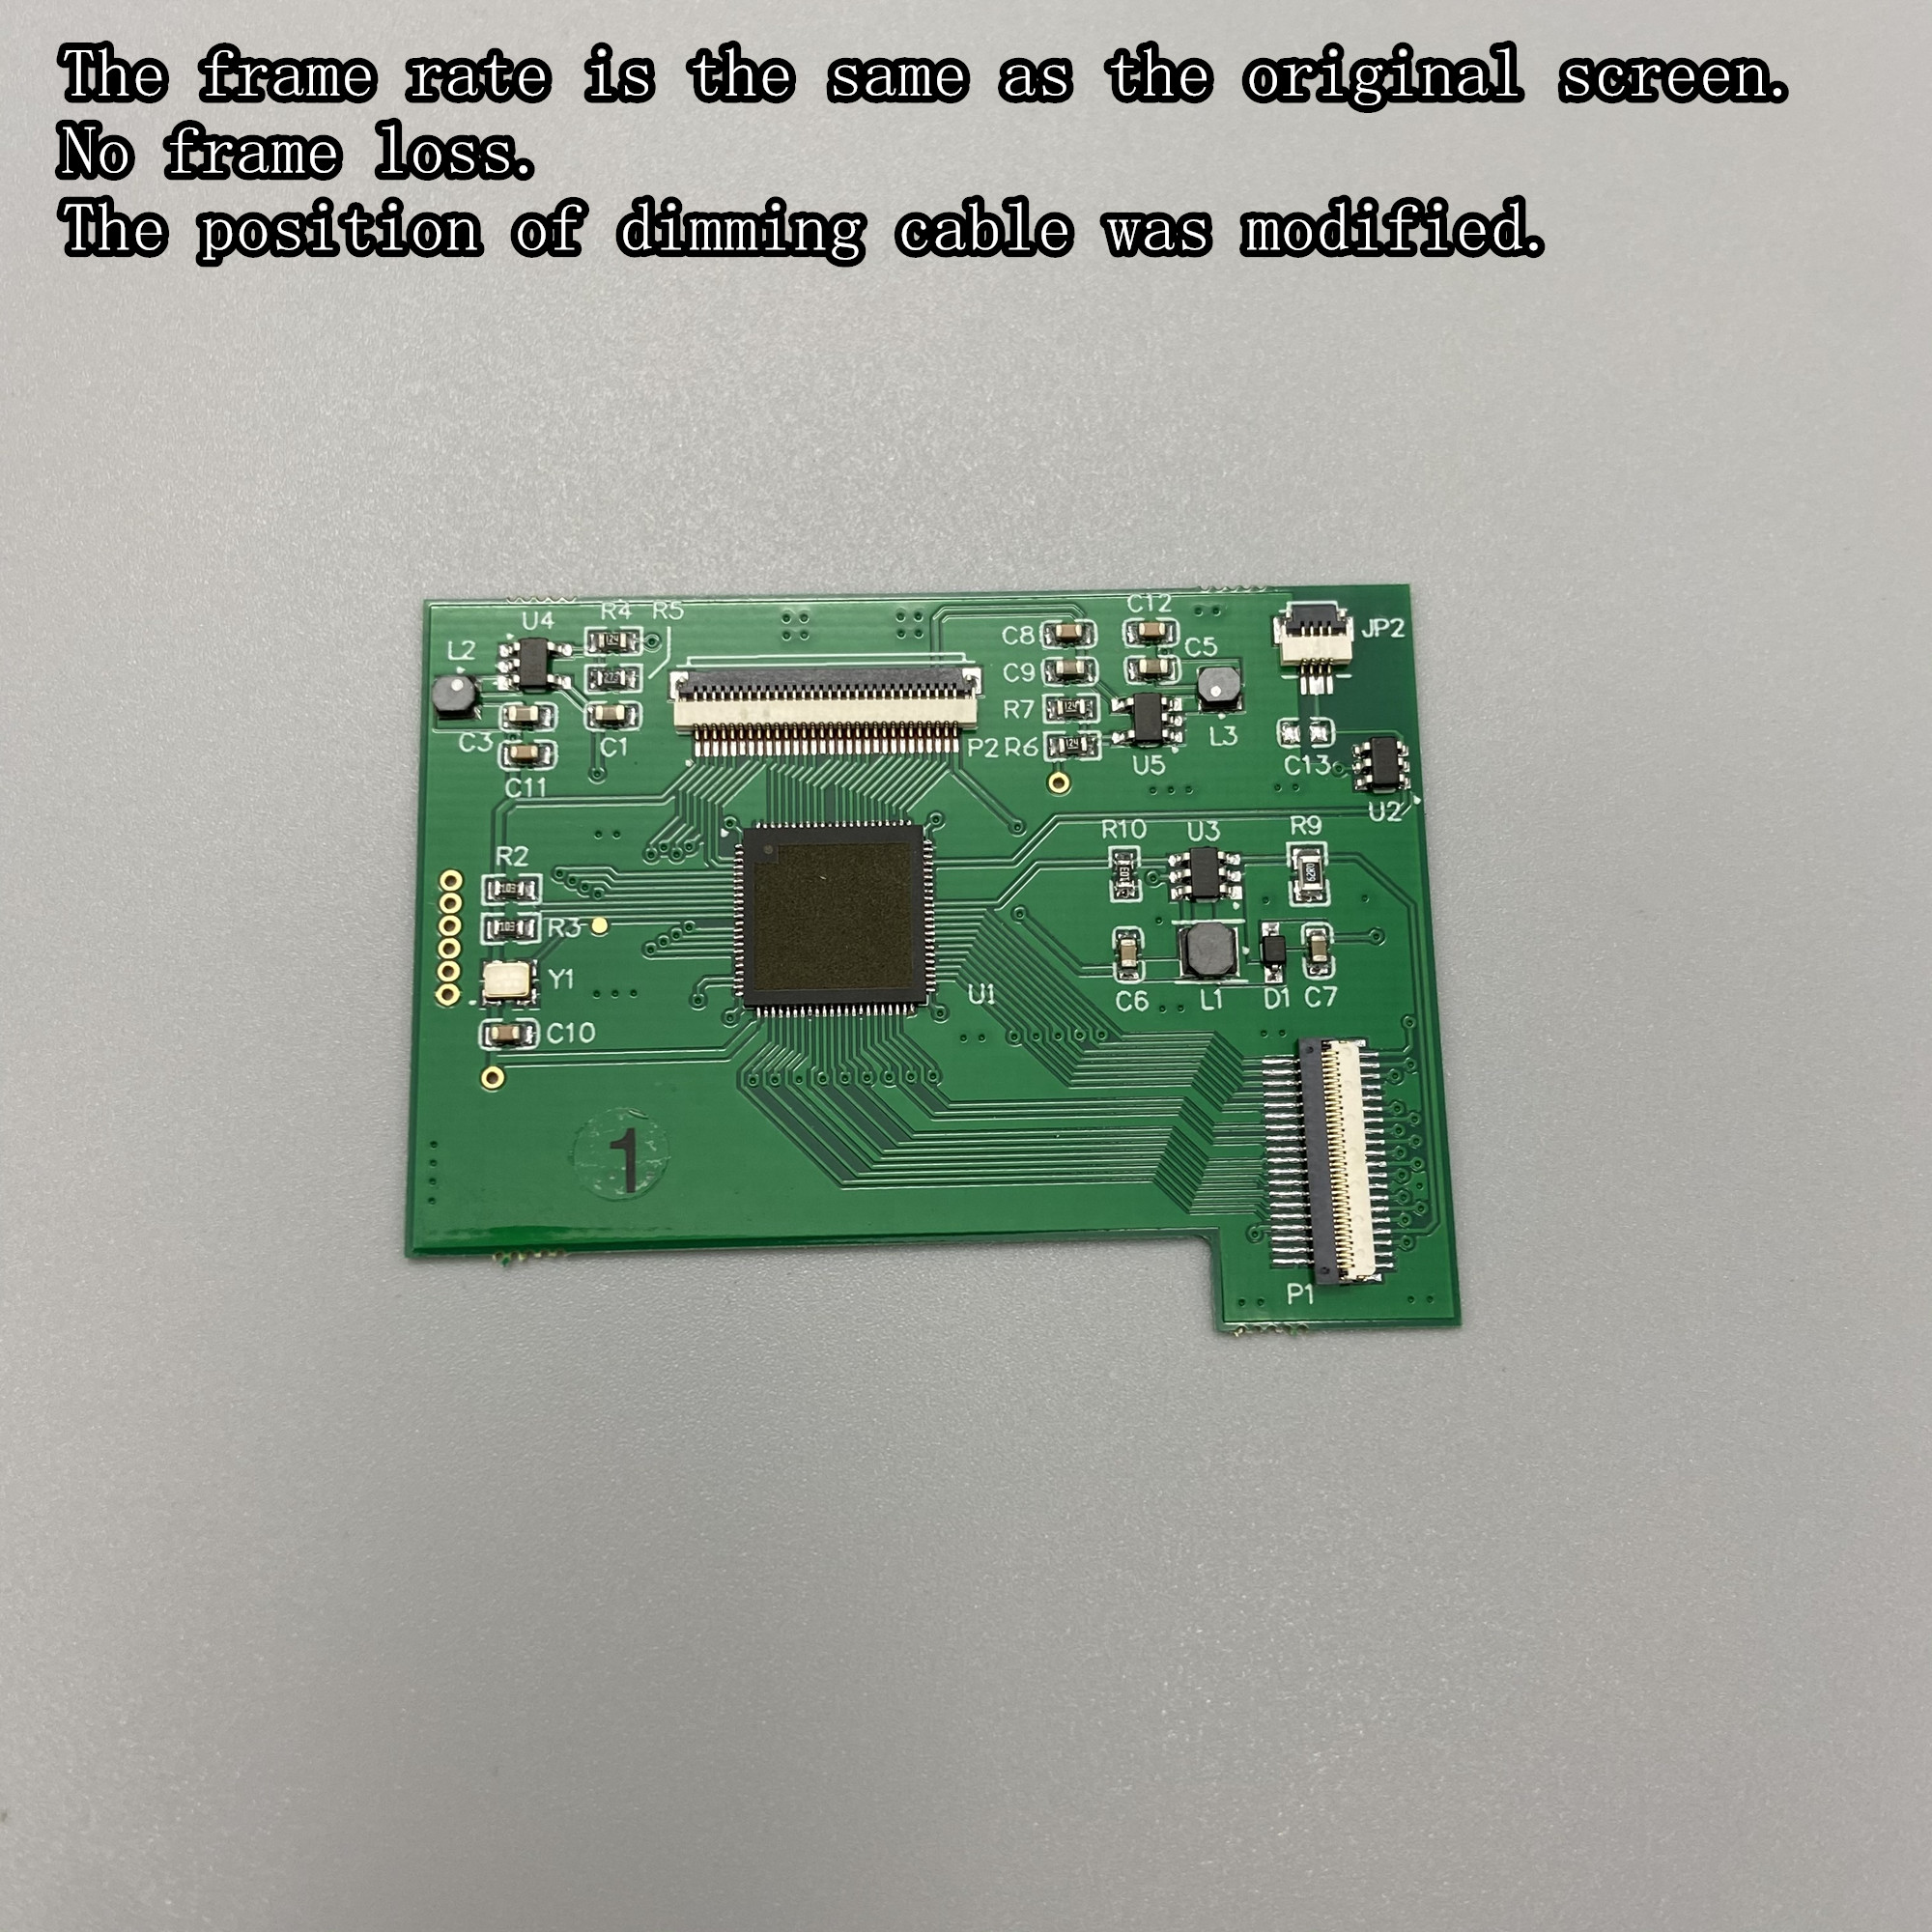 Lcd-Screen Shell Gameboy-Color Cutting. Gbc Lcd for Gbc-Plug And Play Without Welding